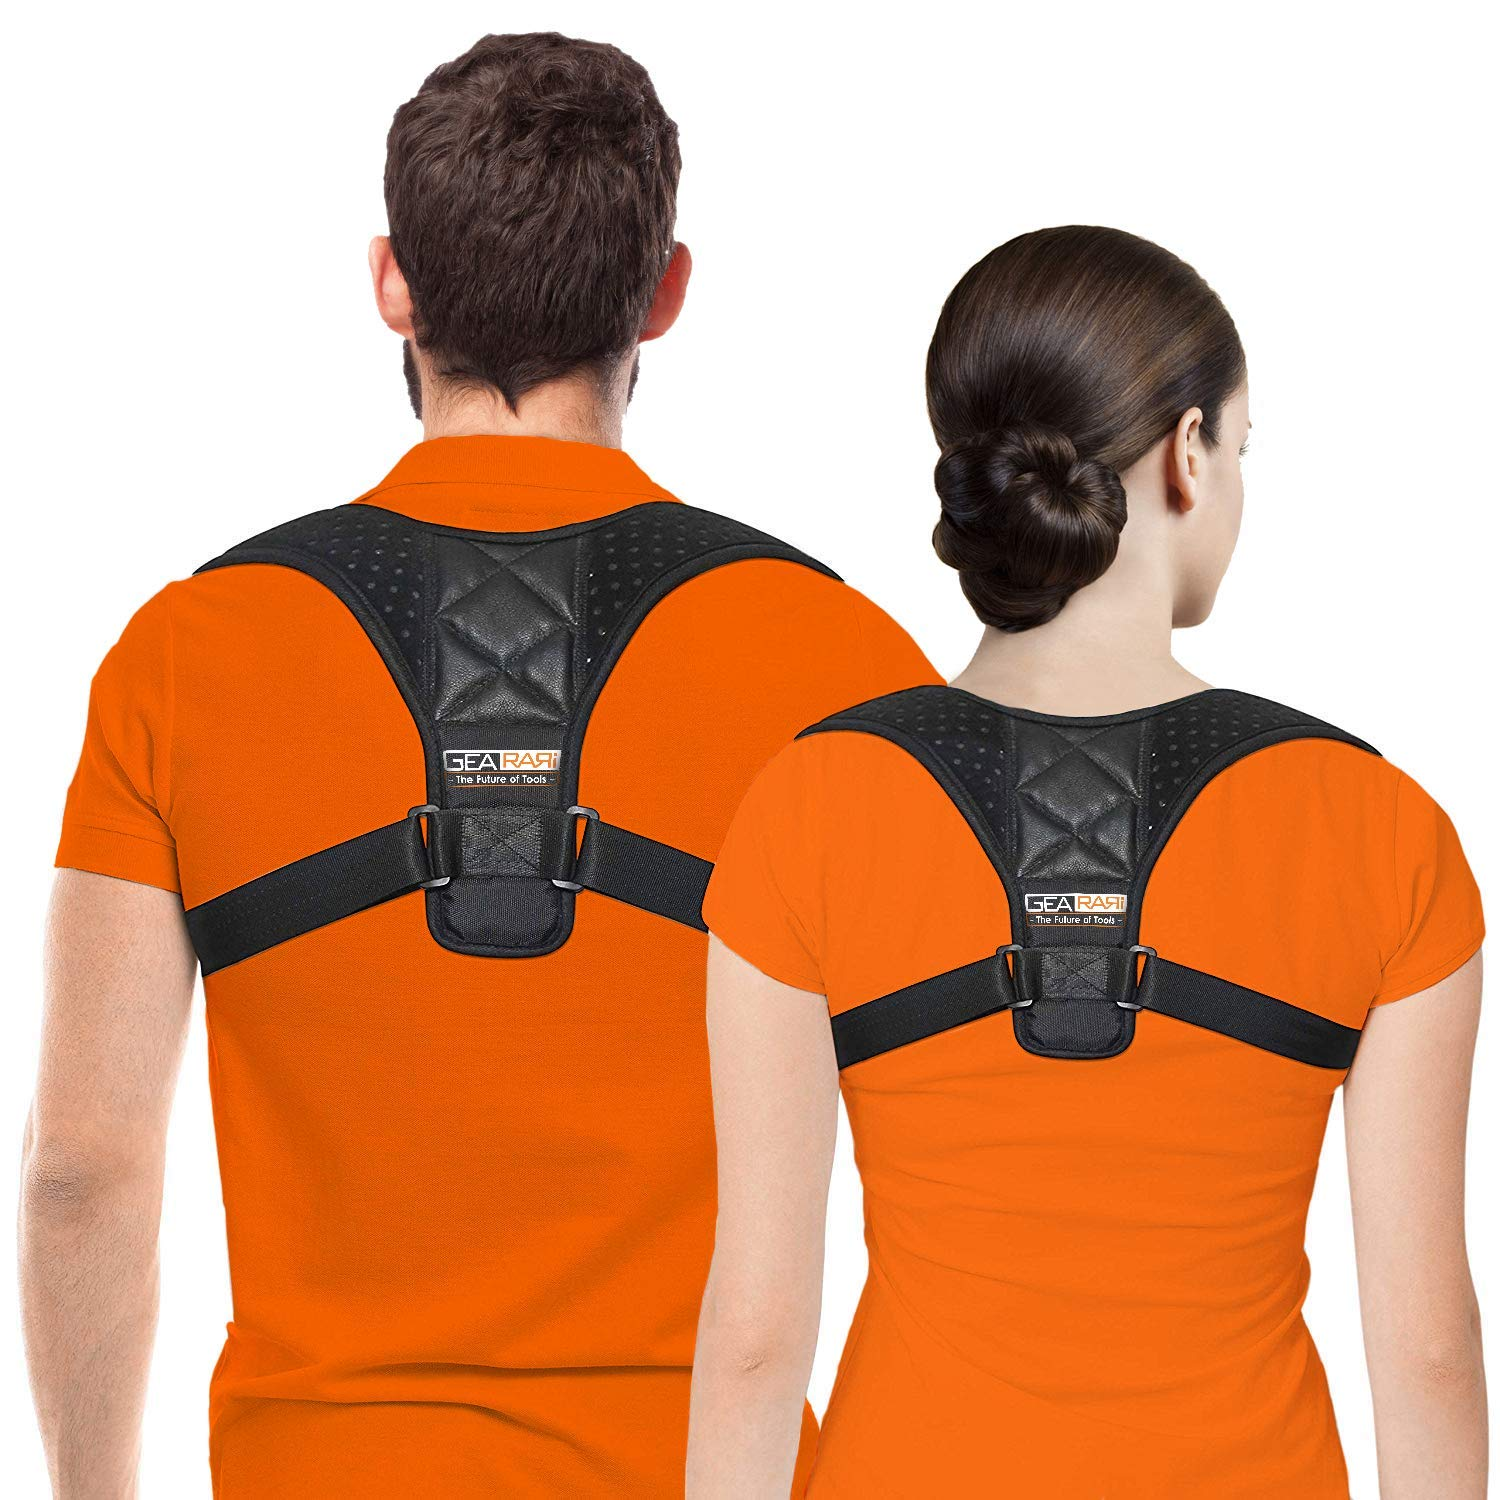 Posture Corrector for Women Men - Posture Brace - Adjustable Back Straightener - Discreet Back Brace for Upper Back Pain Relief, Comfortable Posture Trainer FDA Approved